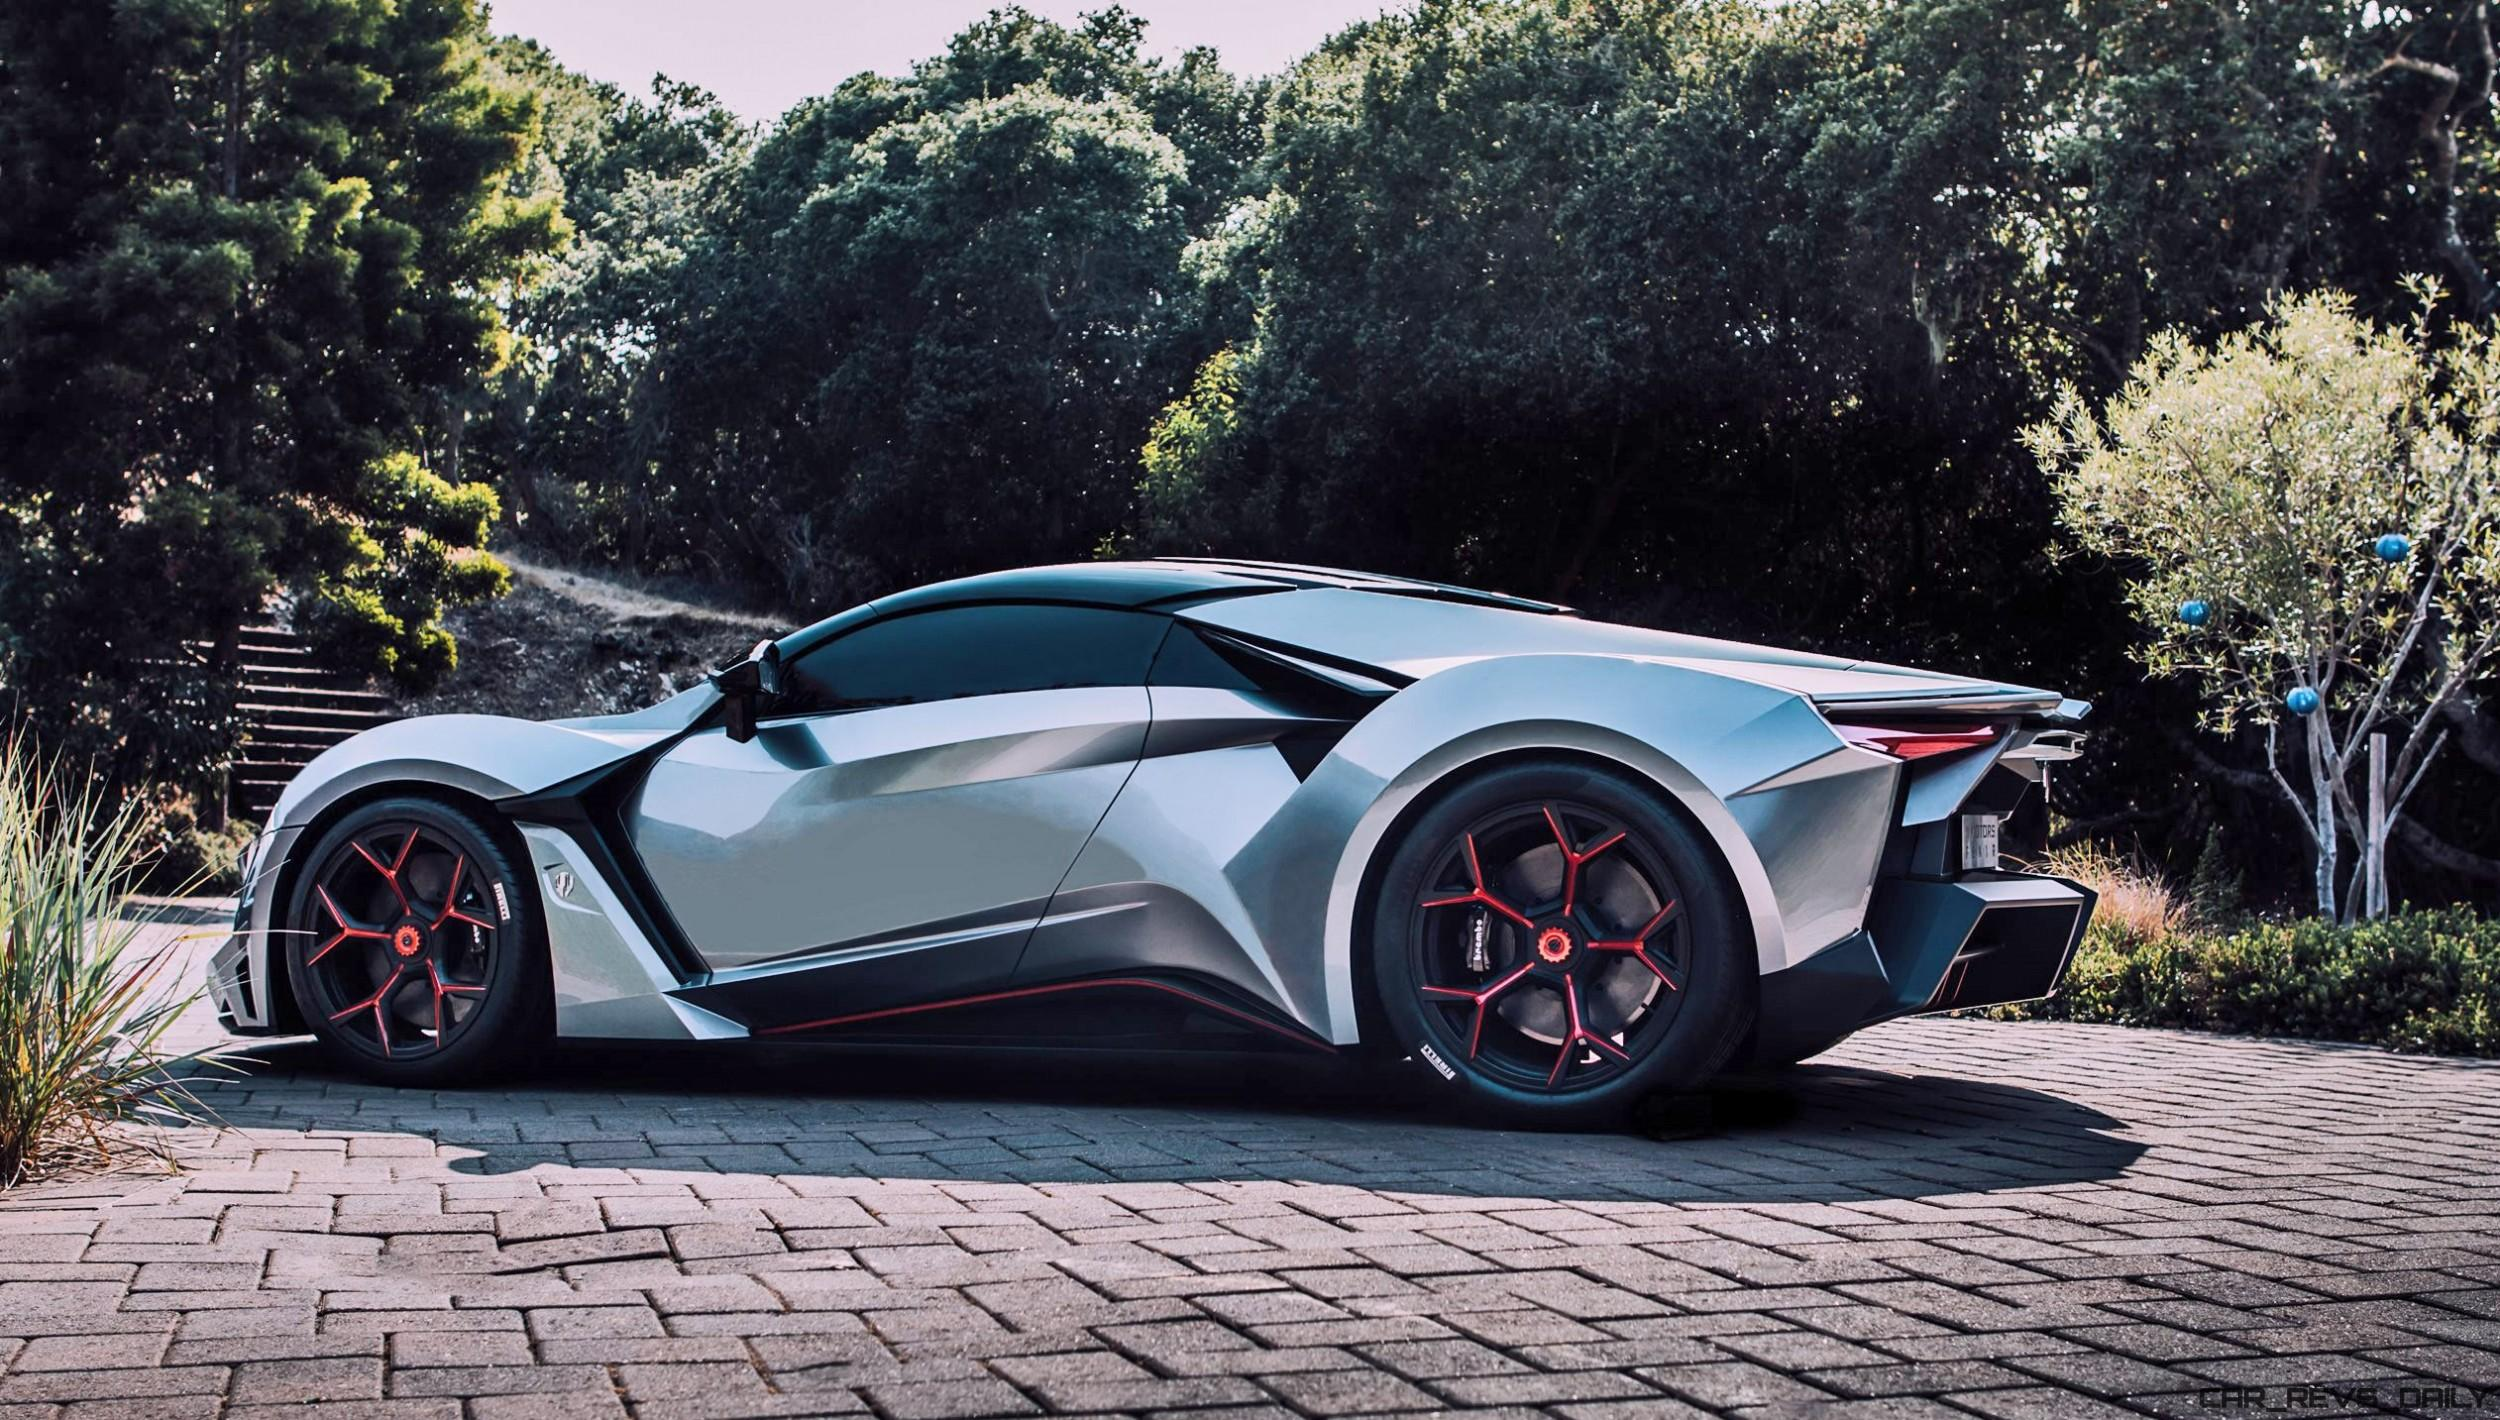 2017 W Motors Fenyr Supersport In Near Production Form For